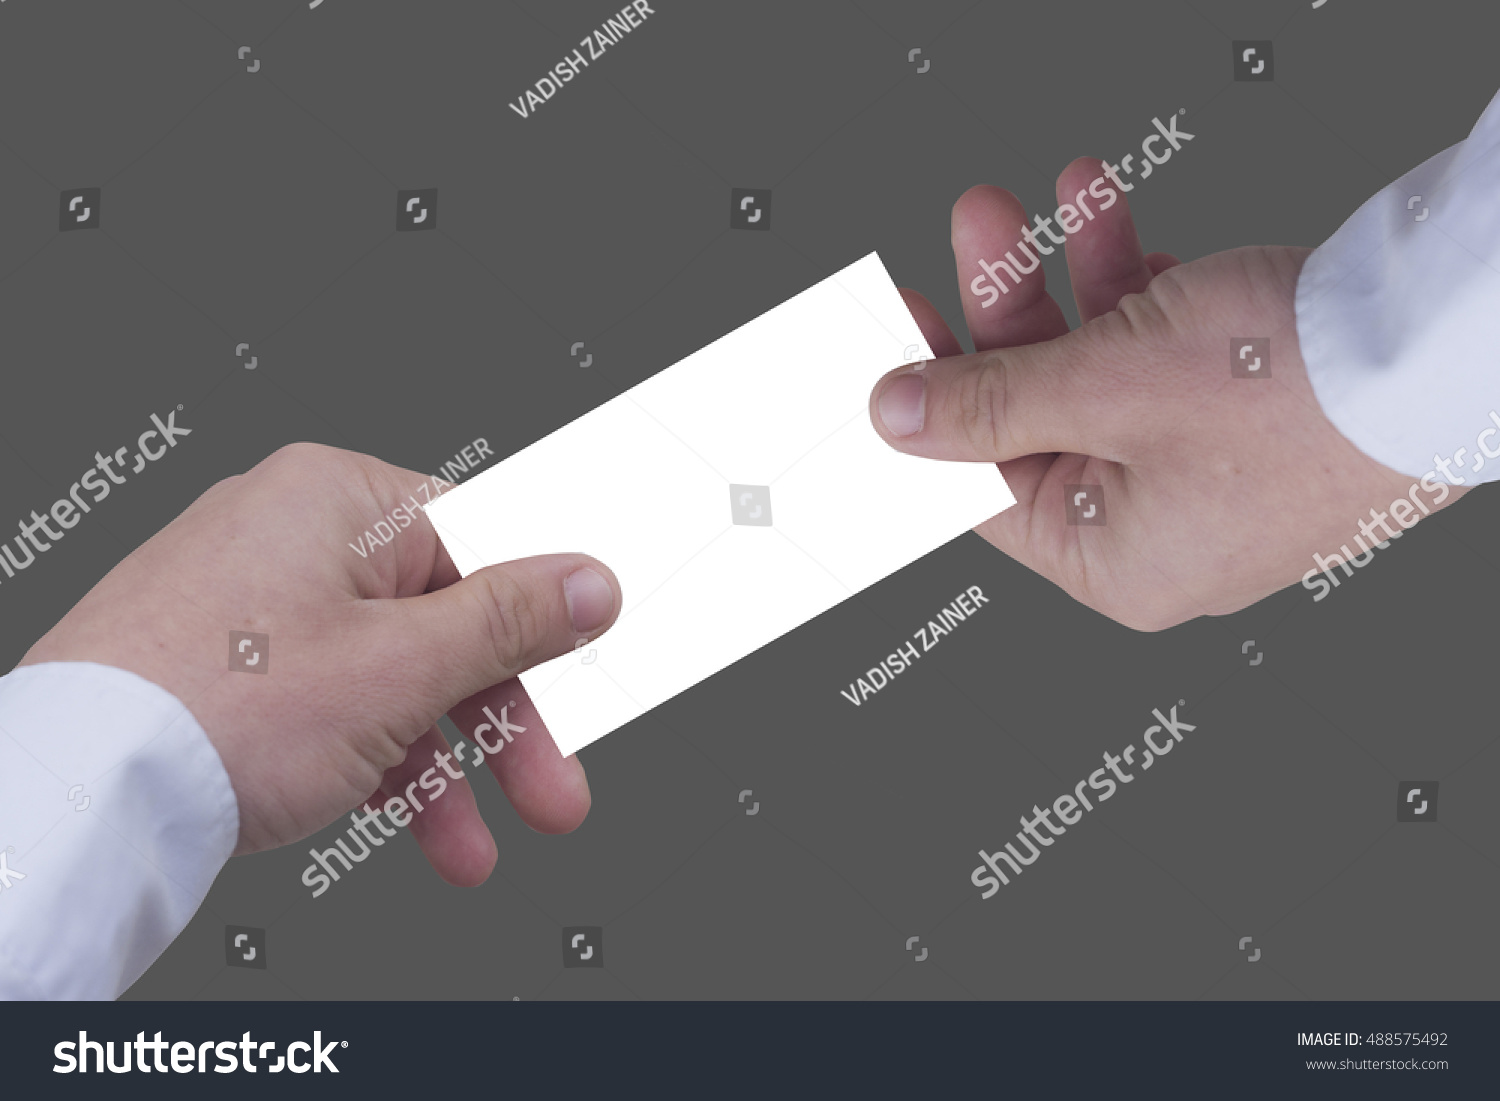 Business Card Hand the Guy Shirt Holding Stock Photo 488575492 ...